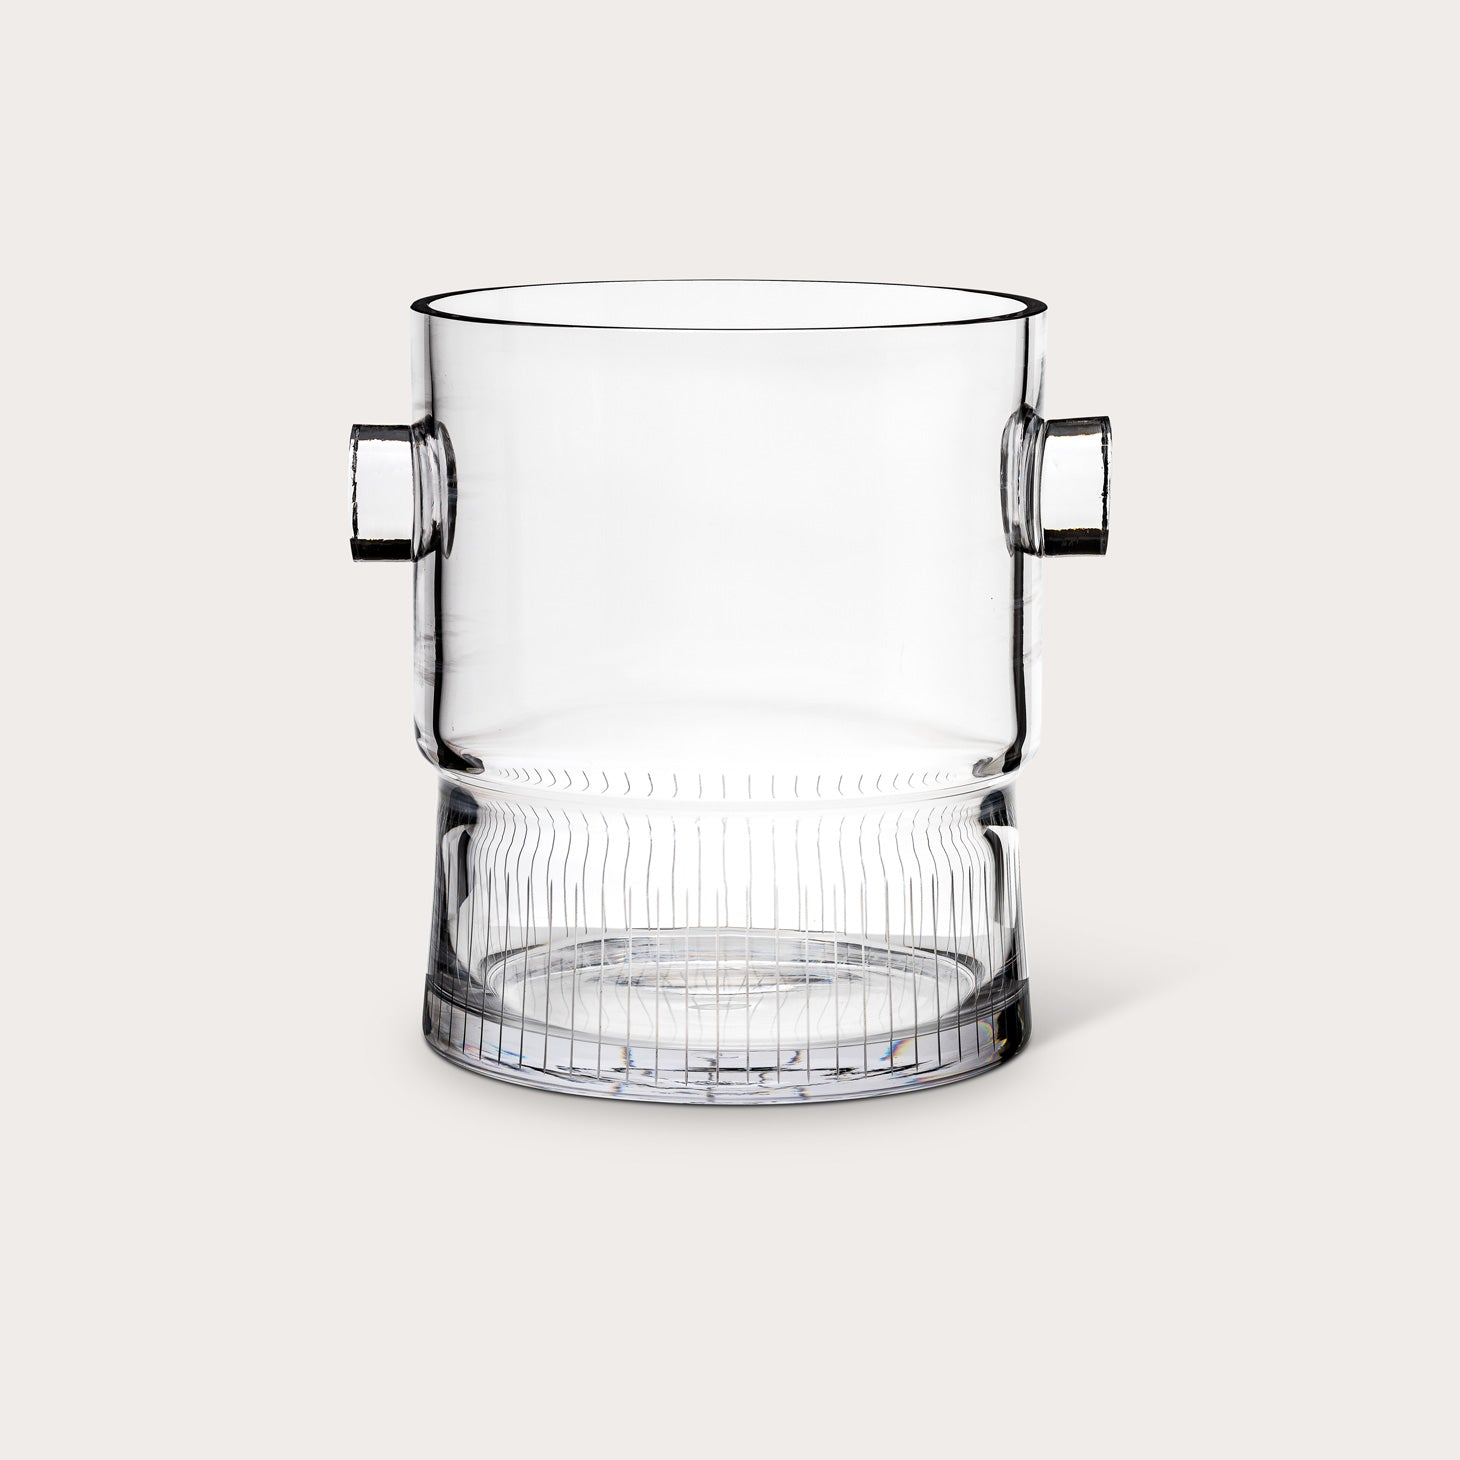 Otto Cooler Accessories Yabu Pushelberg Designer Furniture Sku: 110-100-10020